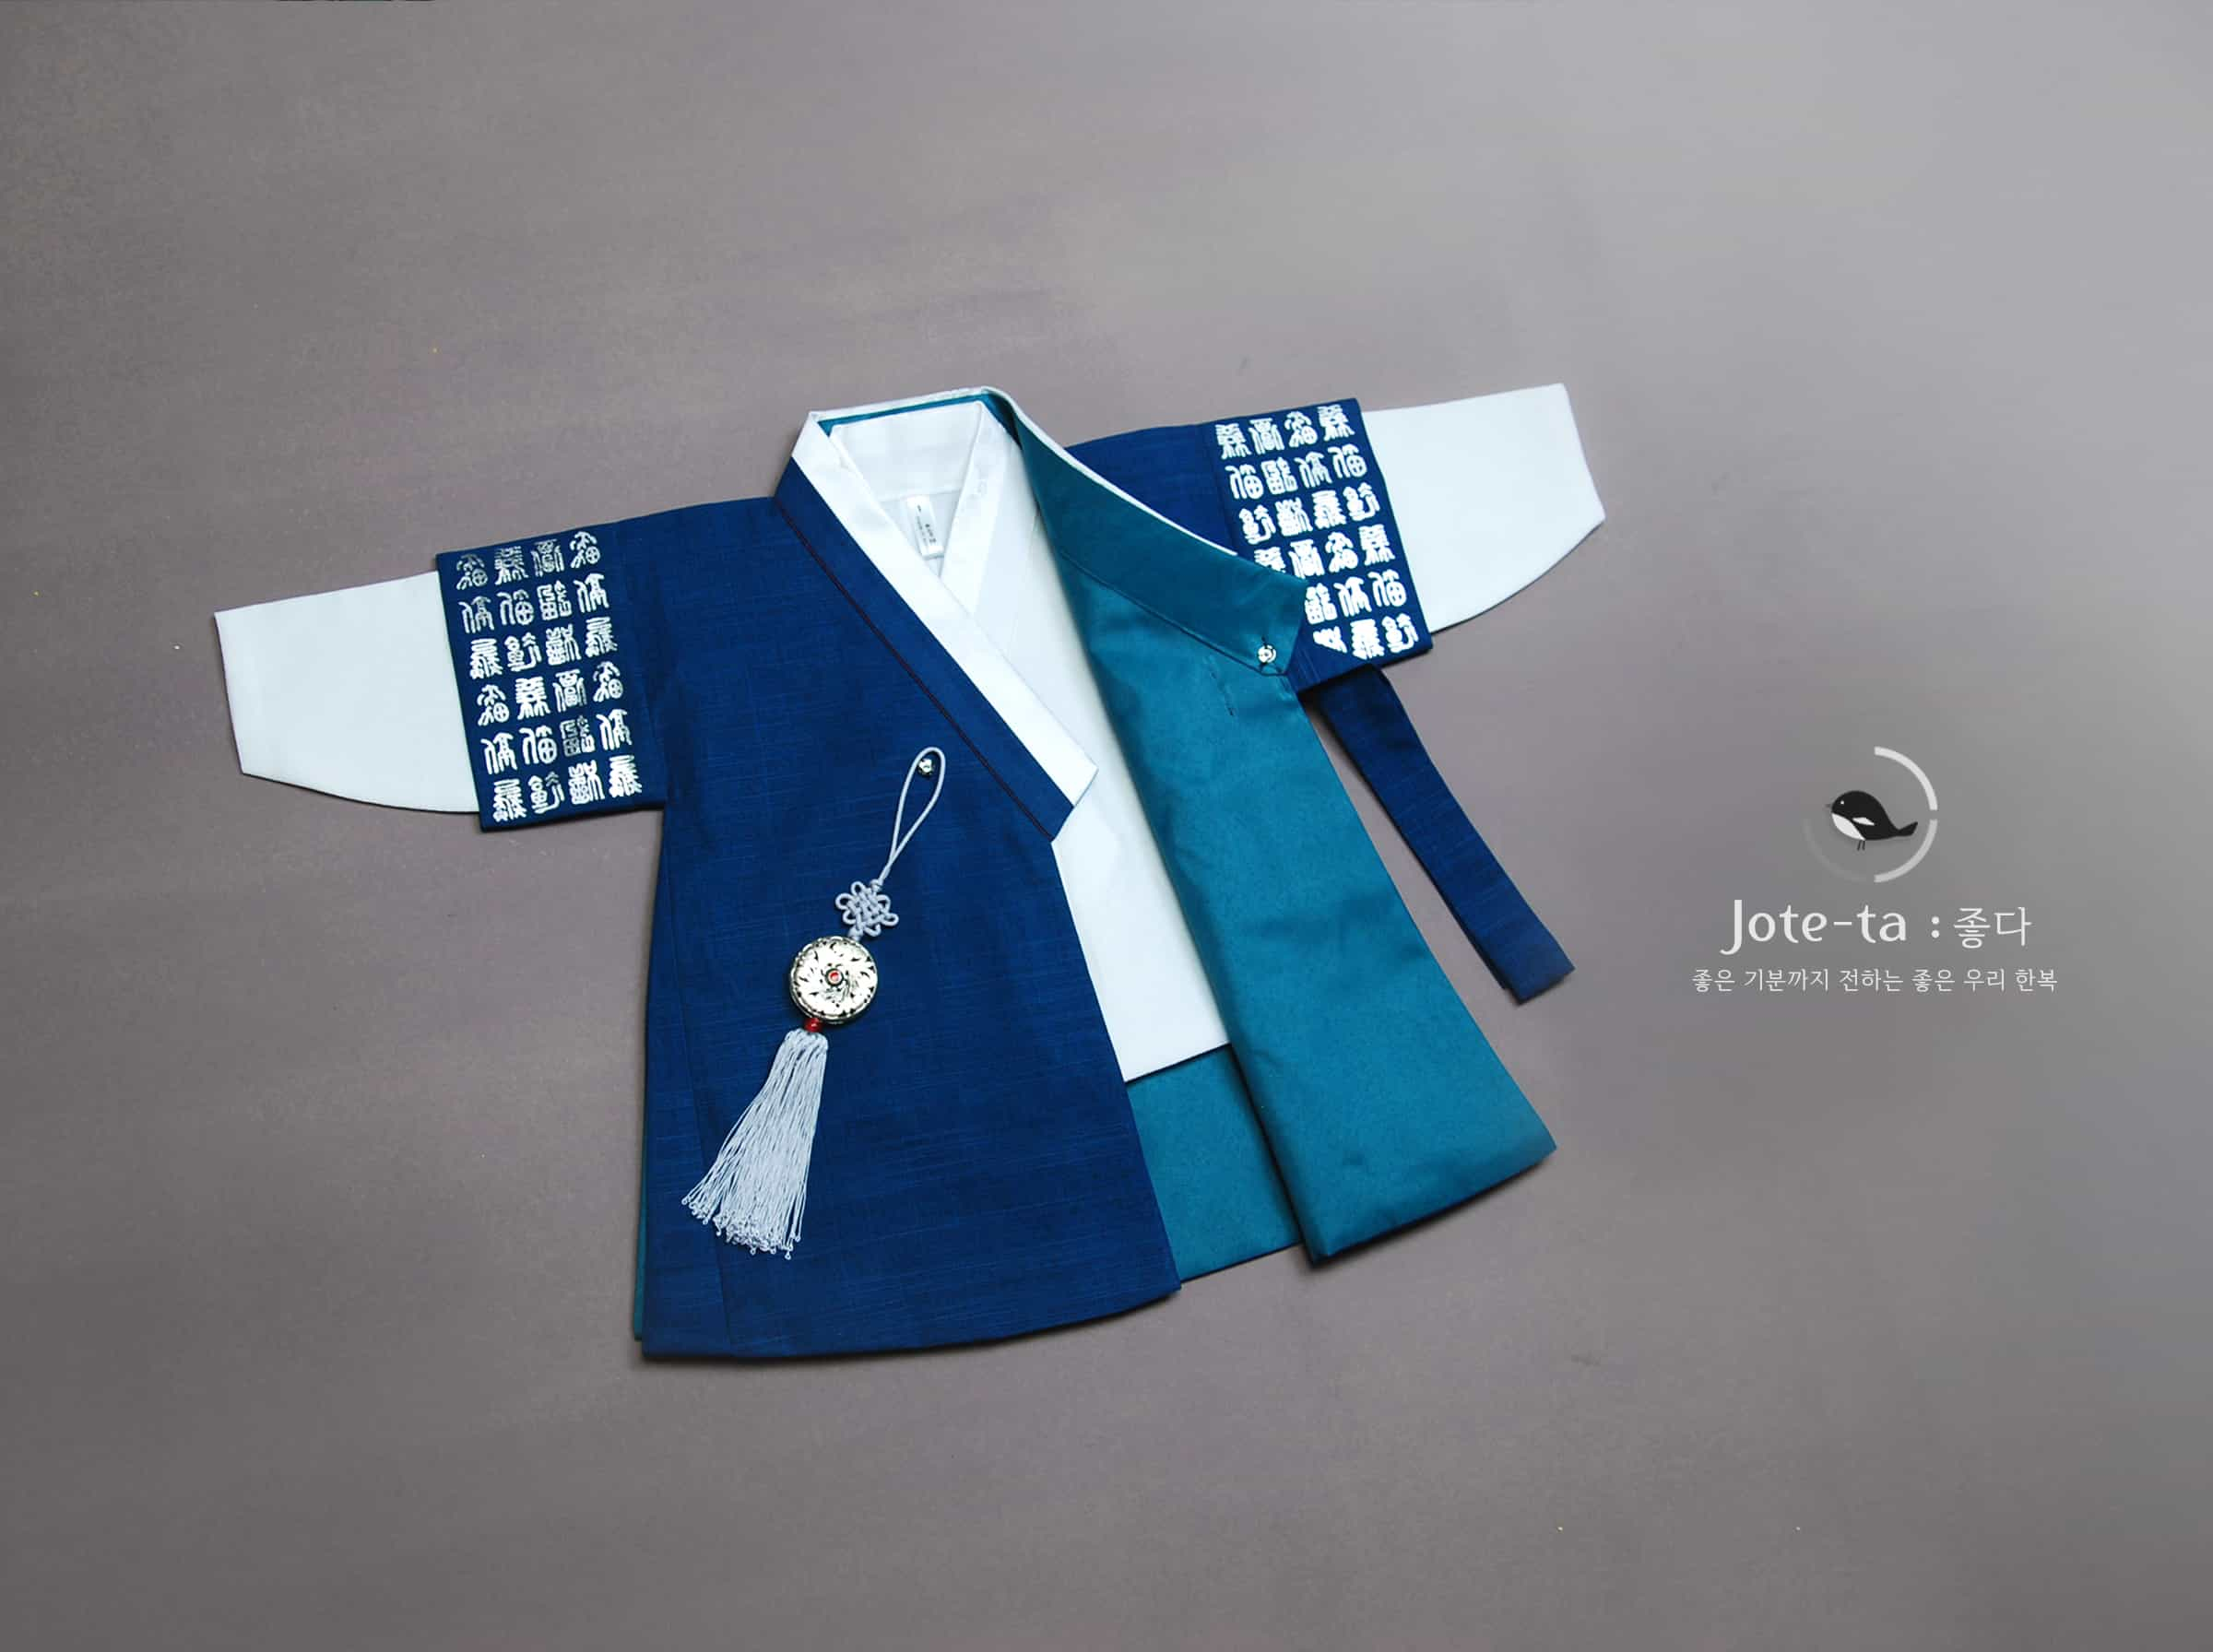 This baby boy hanbok is a one of a kind hanbok with traditional Korean characters on the sleeves. It is only found on Joteta.com and our baby hanbok is 100% made in Korea by Korean hanbok artisans.